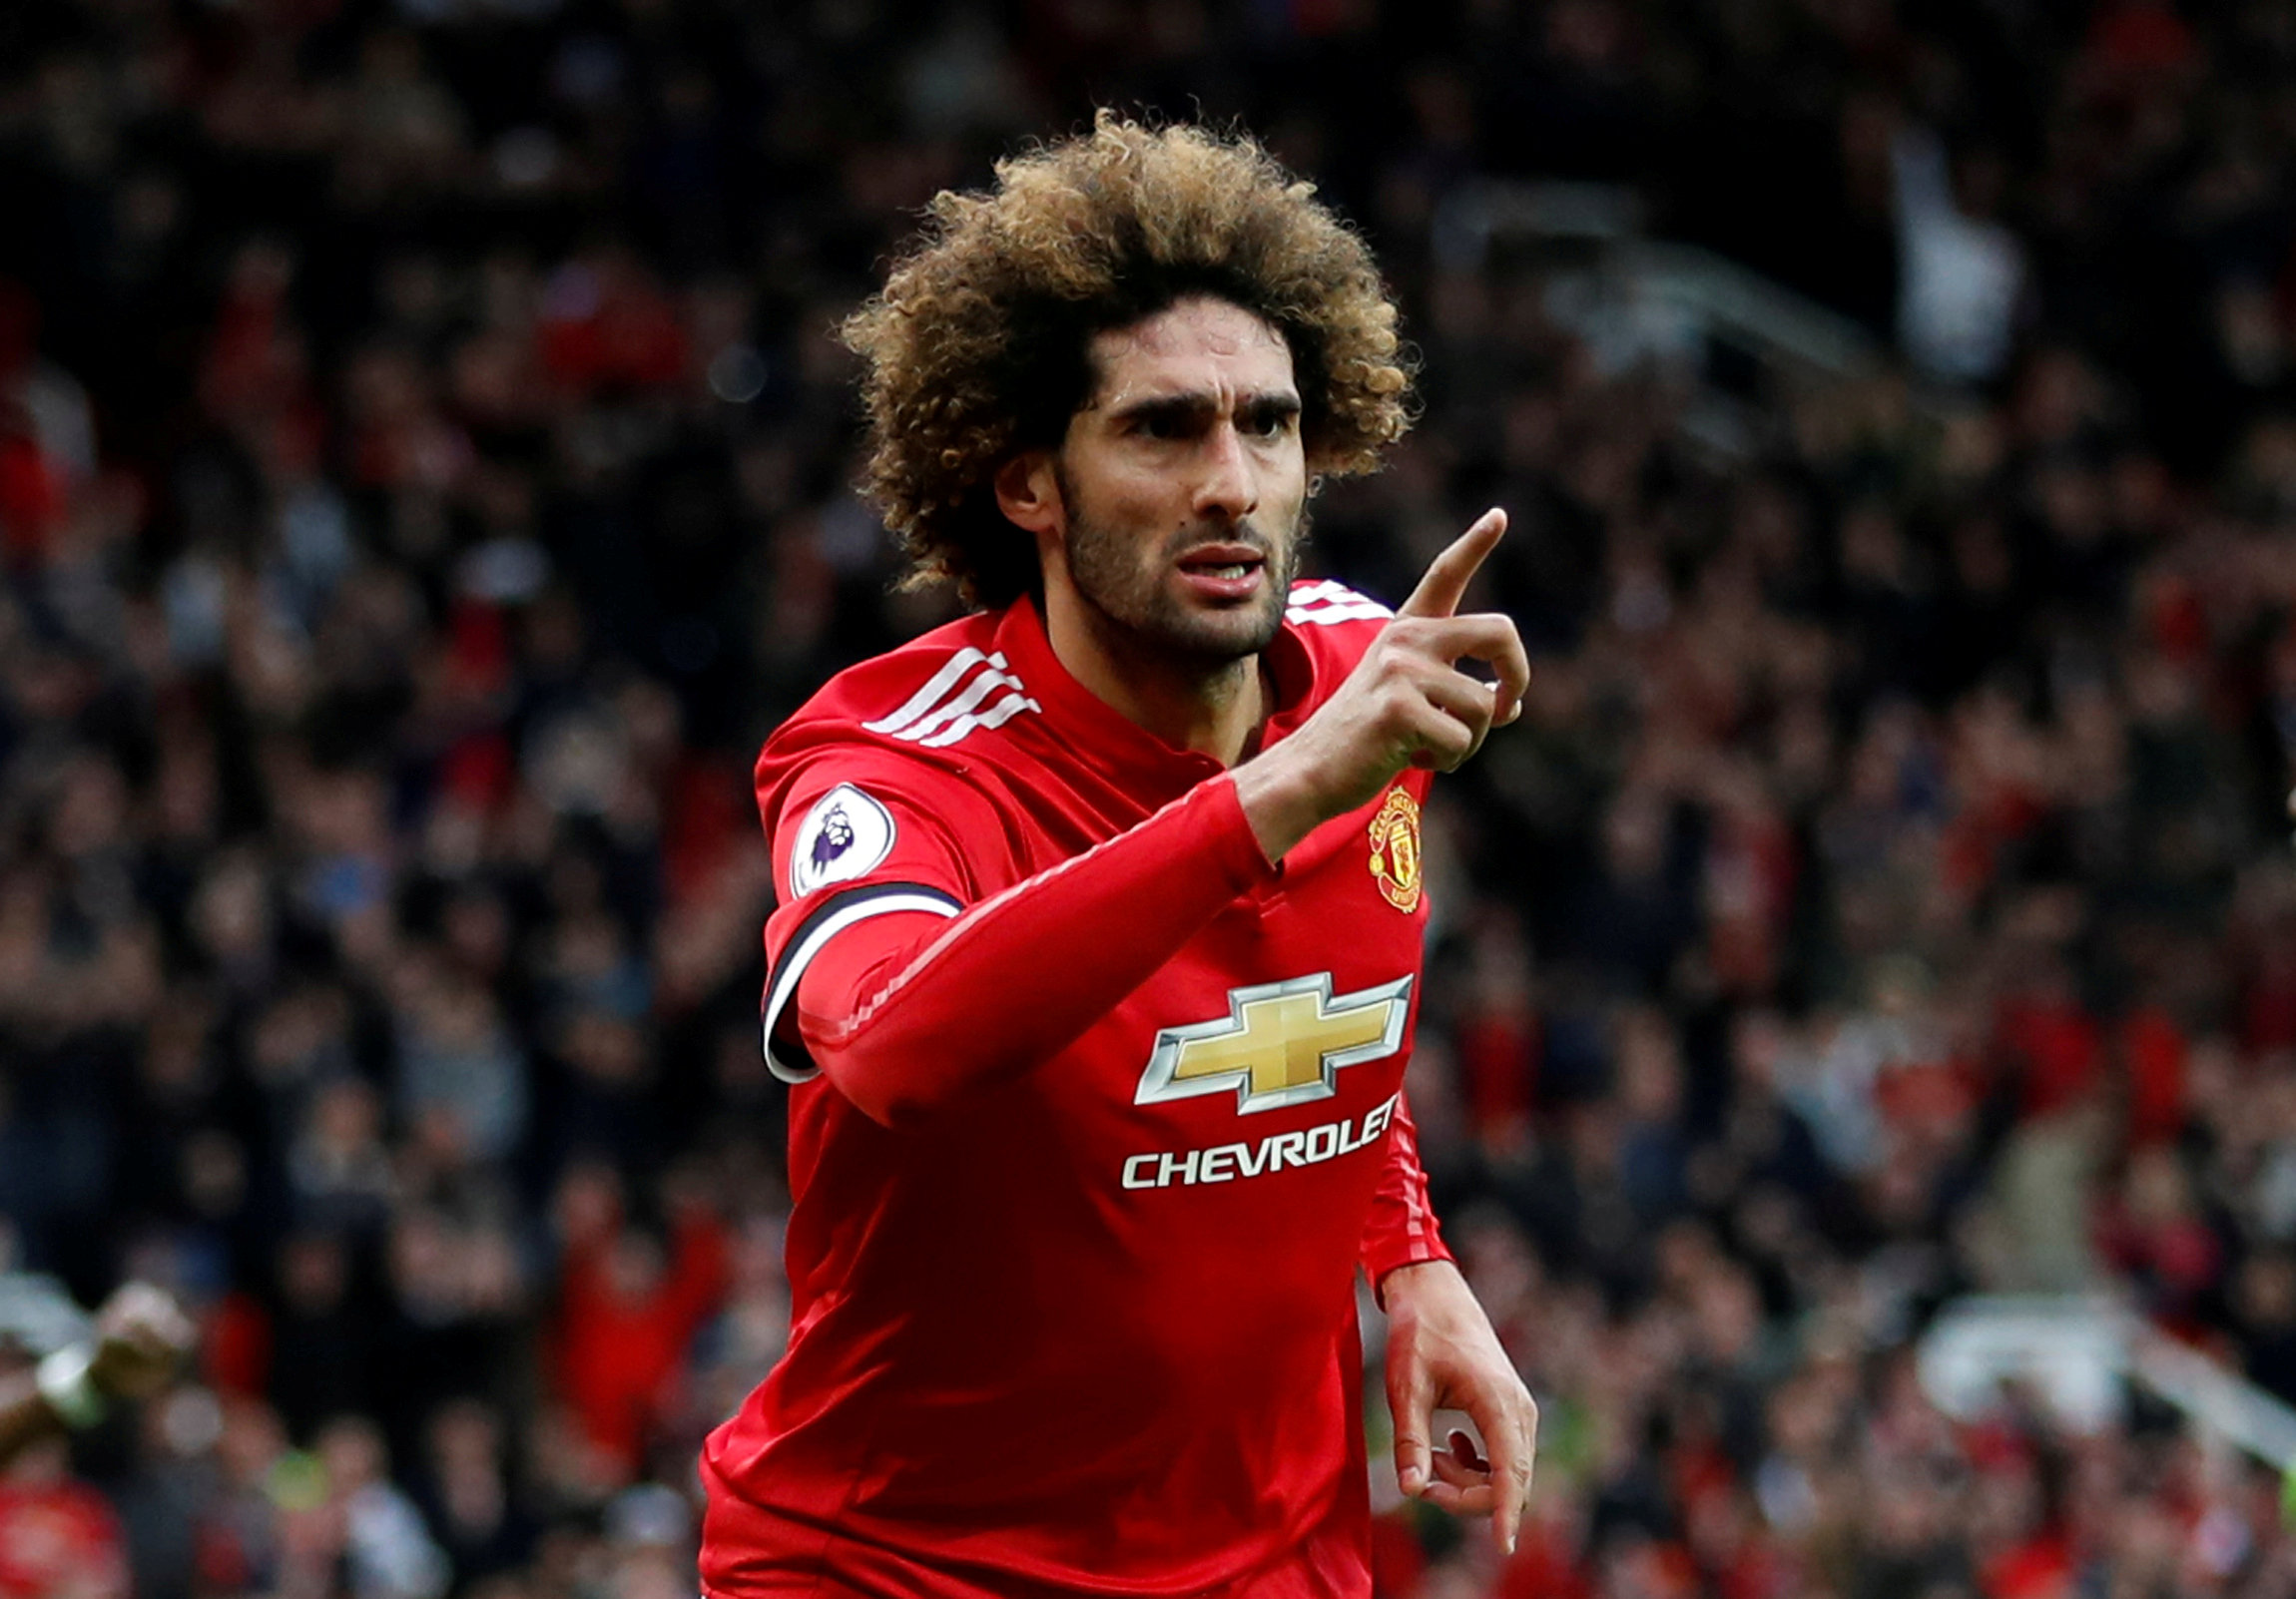 United to offer Fellaini new contract after Belgian sinks Arsenal